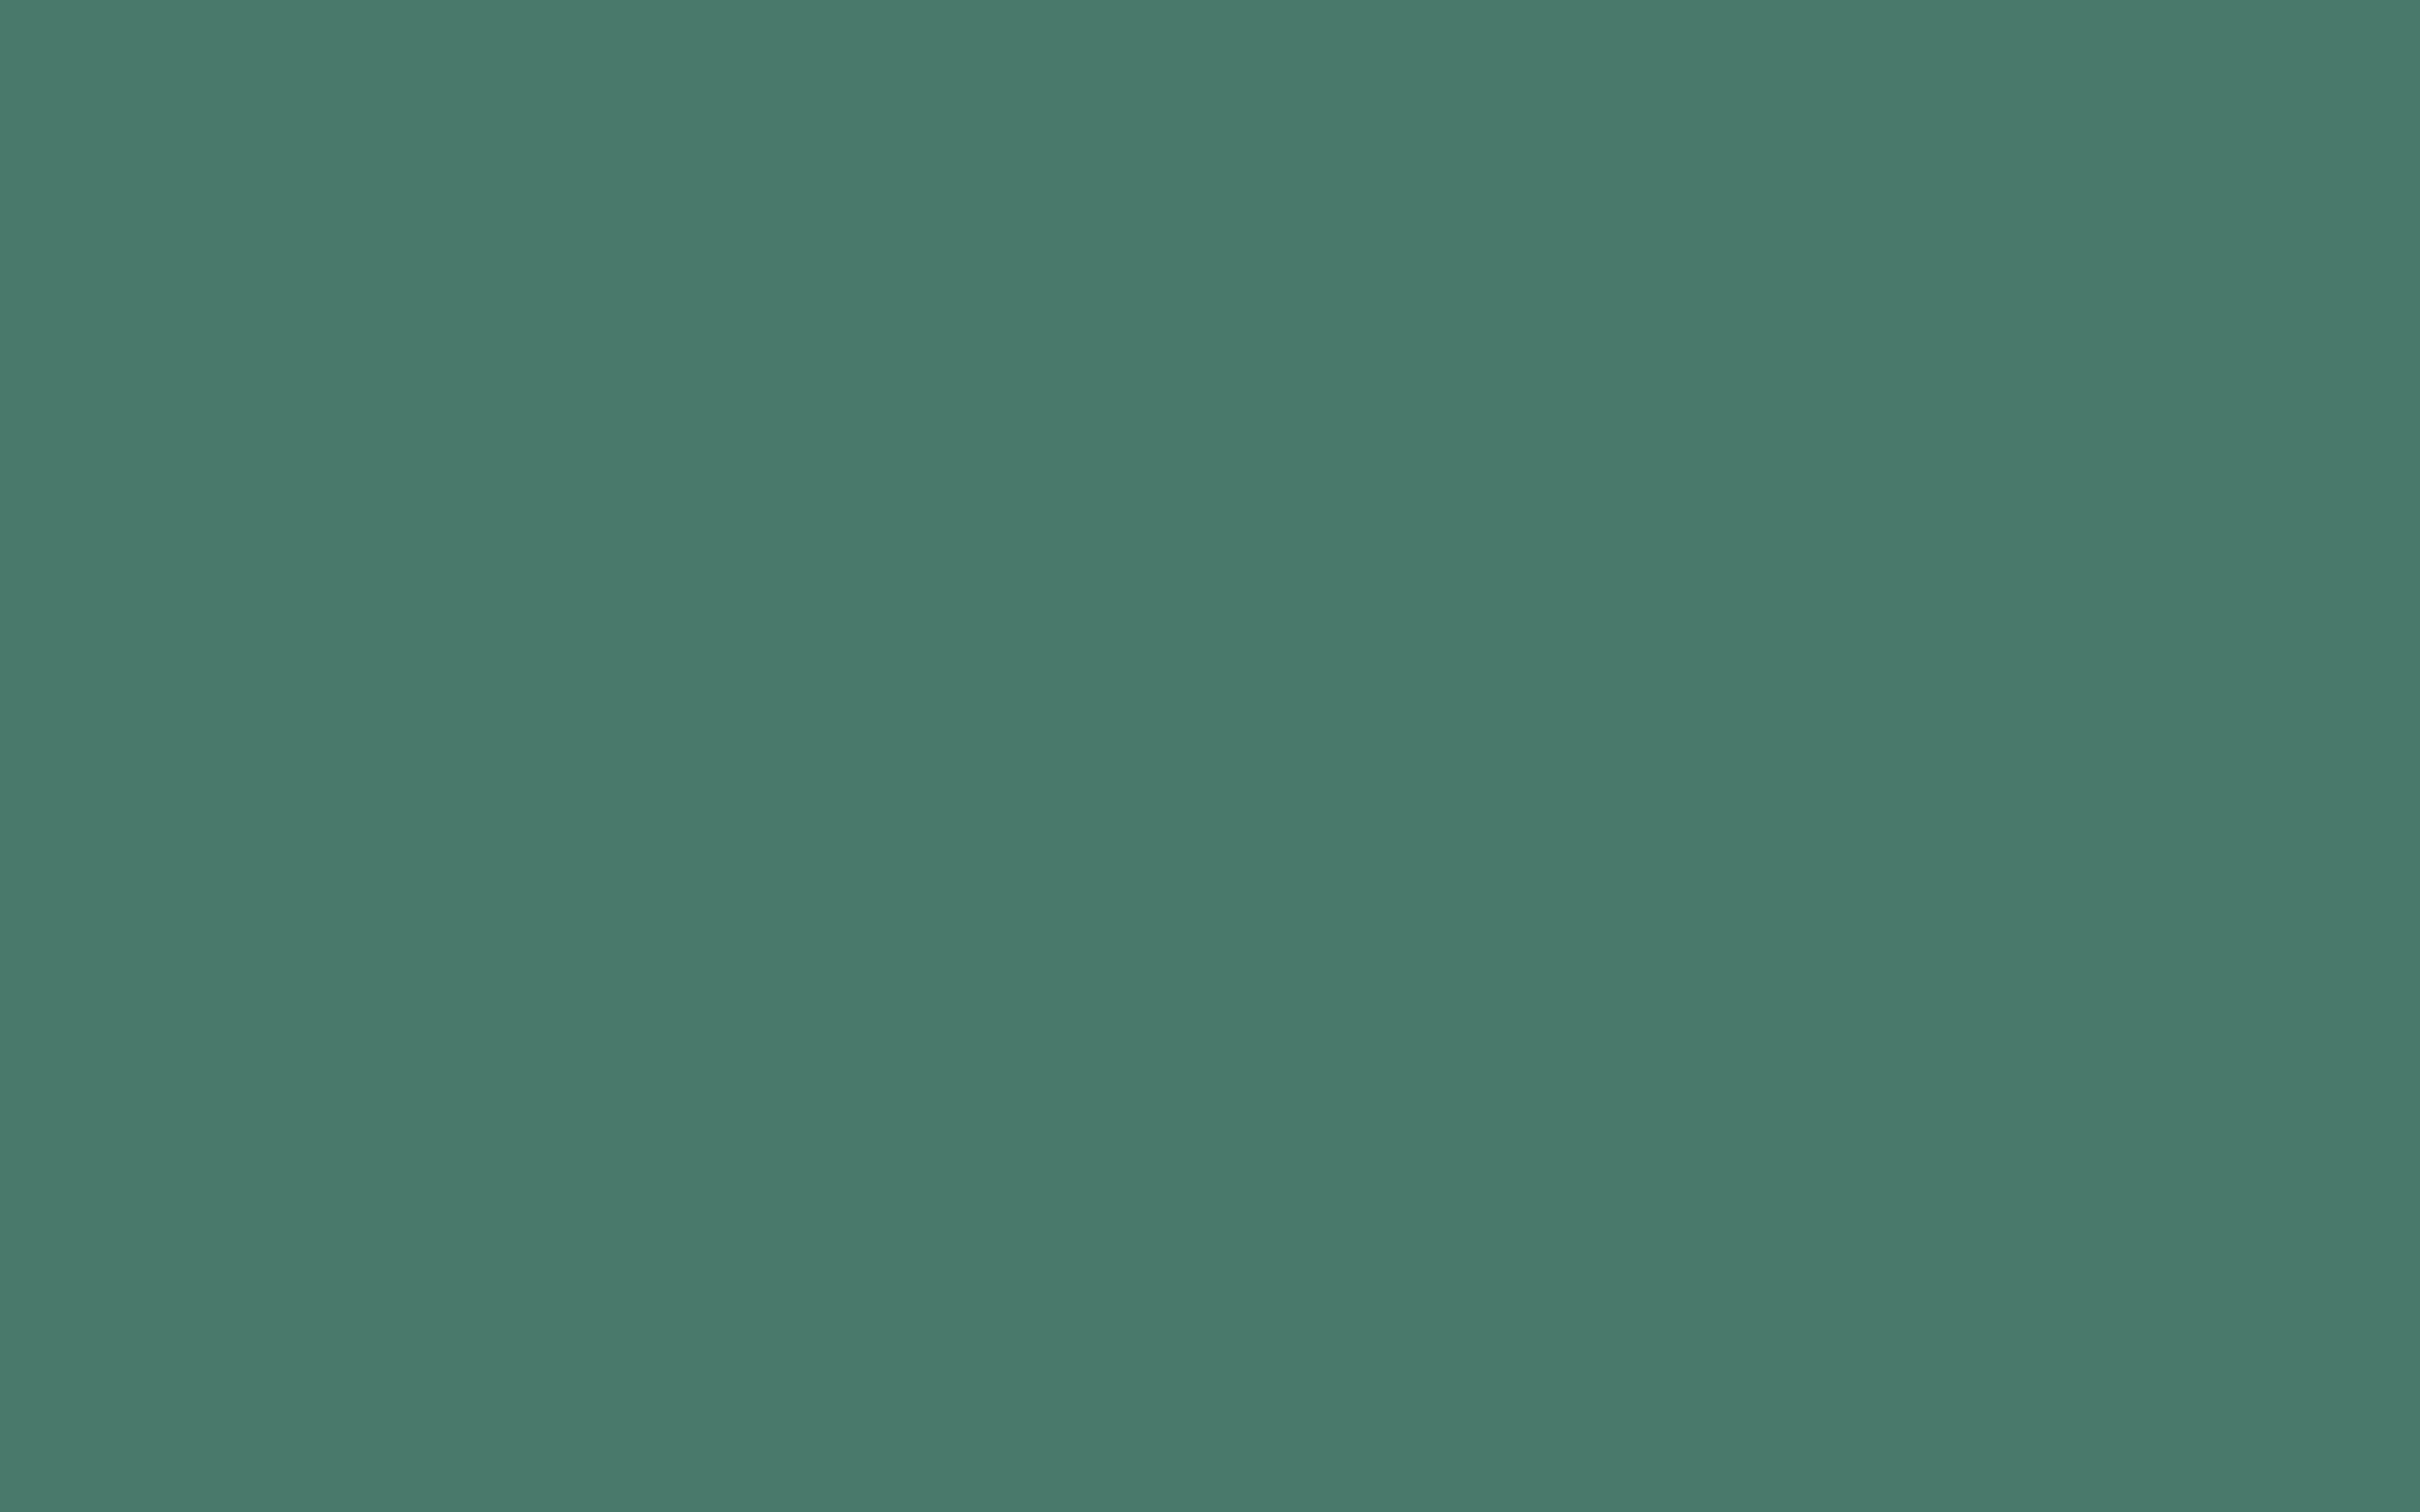 2880x1800 Hookers Green Solid Color Background